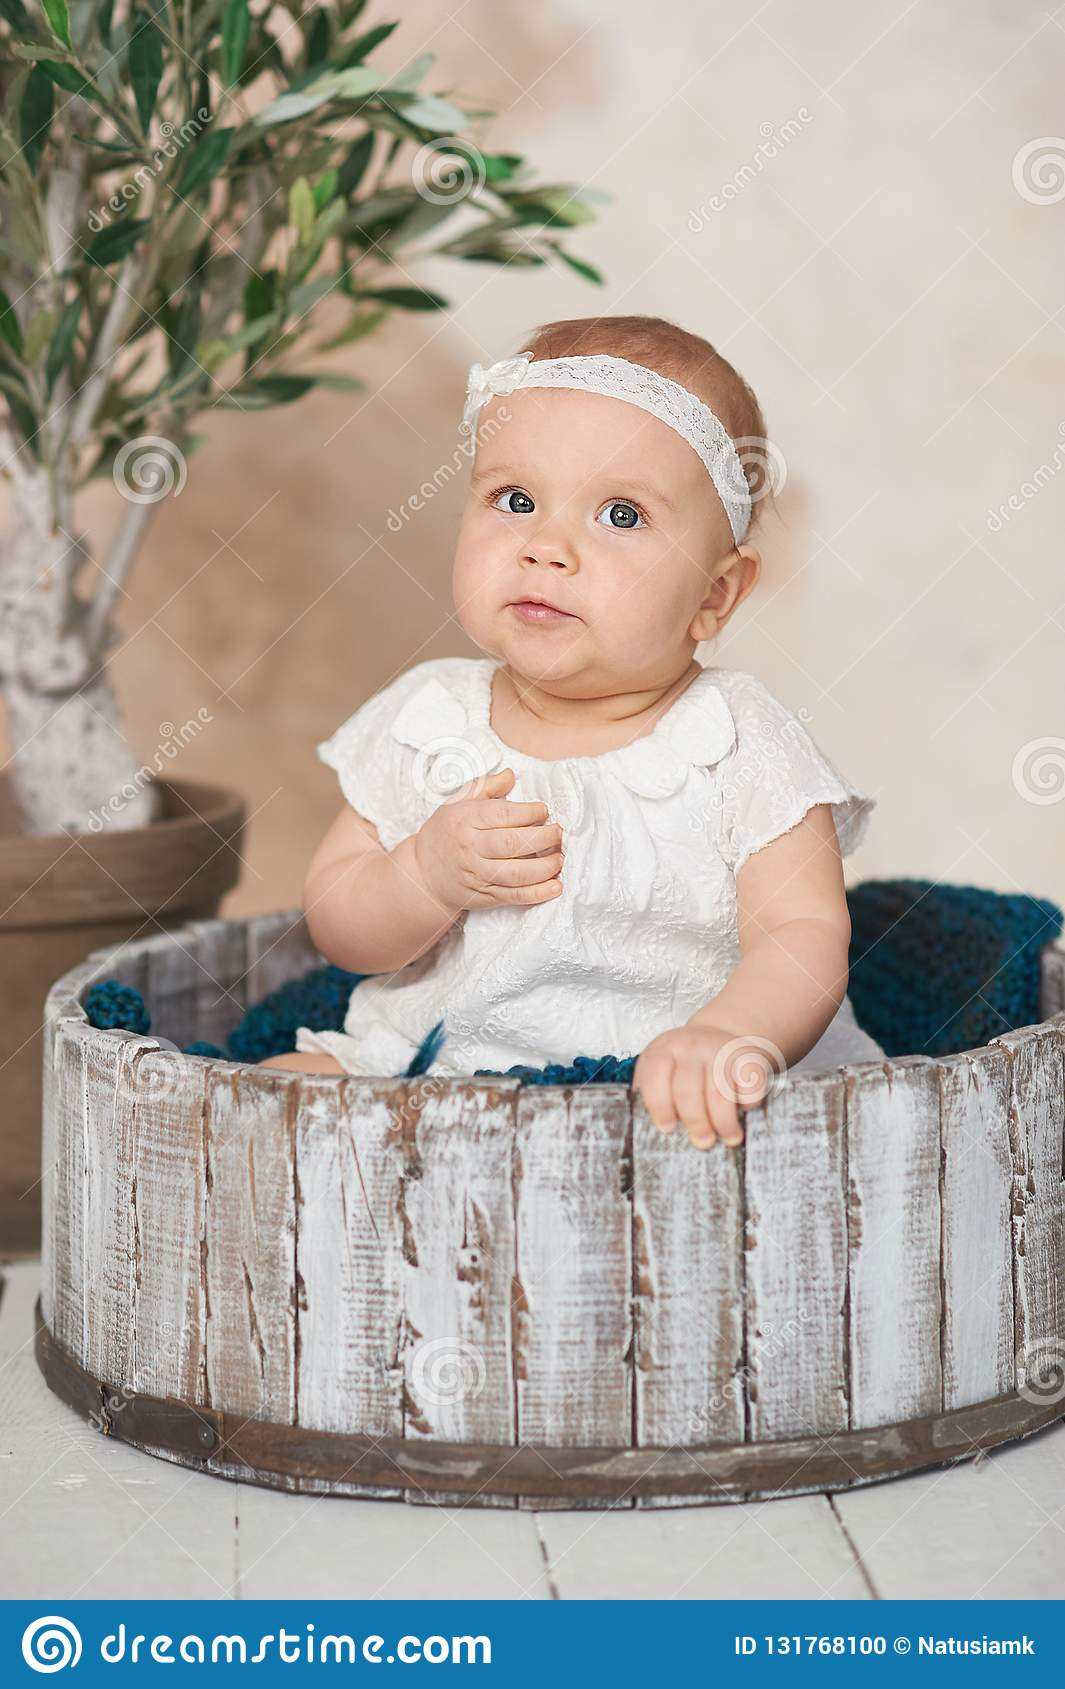 a66c3bb45 Newborn Baby Stock Images - Download 190